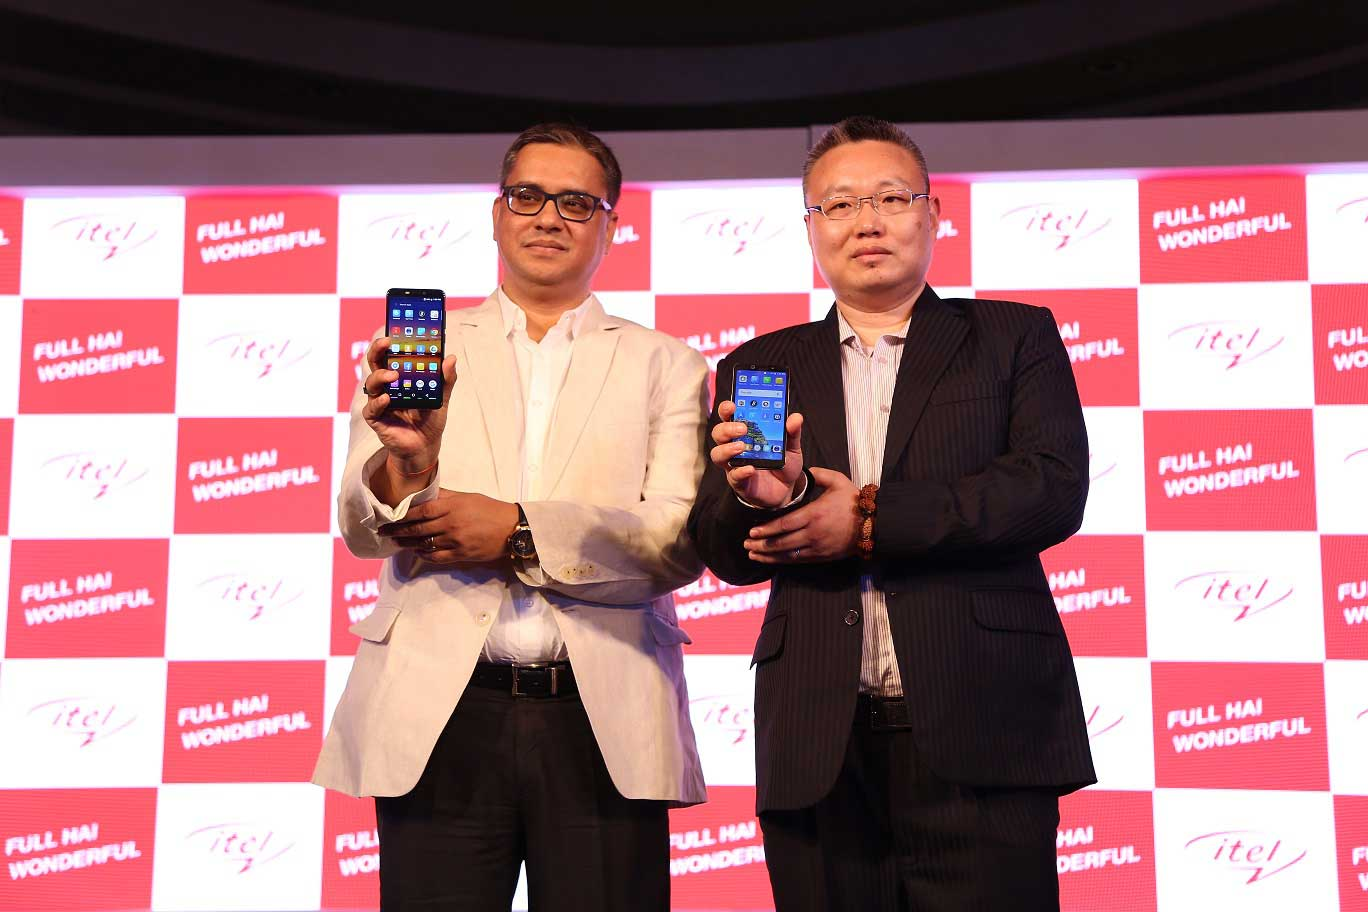 Itel launched S42, A44 and A44 Pro in India starting at Rs. 5799